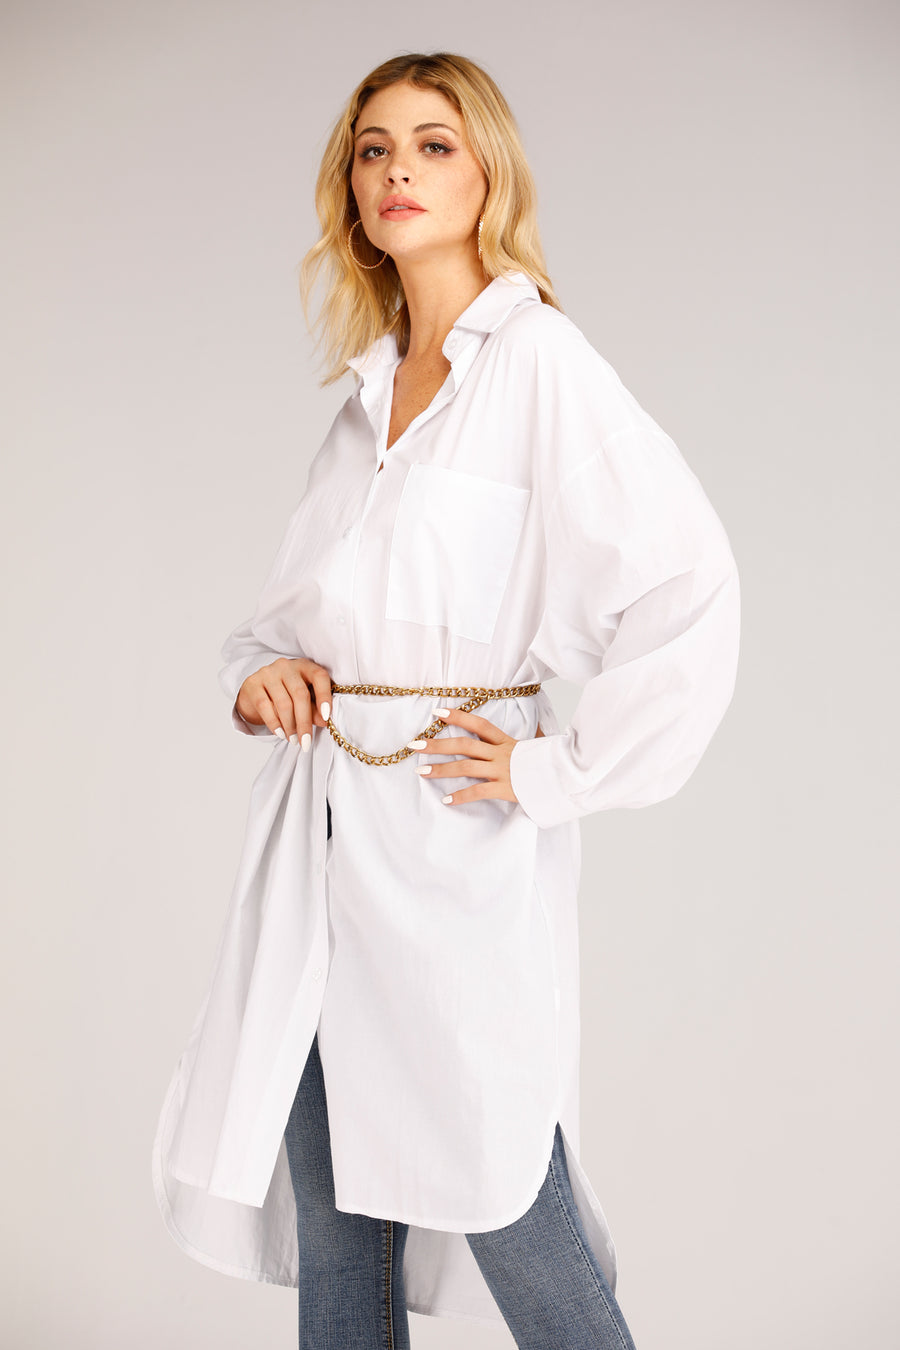 Mantra Pakistan White Cotton Button Shirt Dress | DRESS